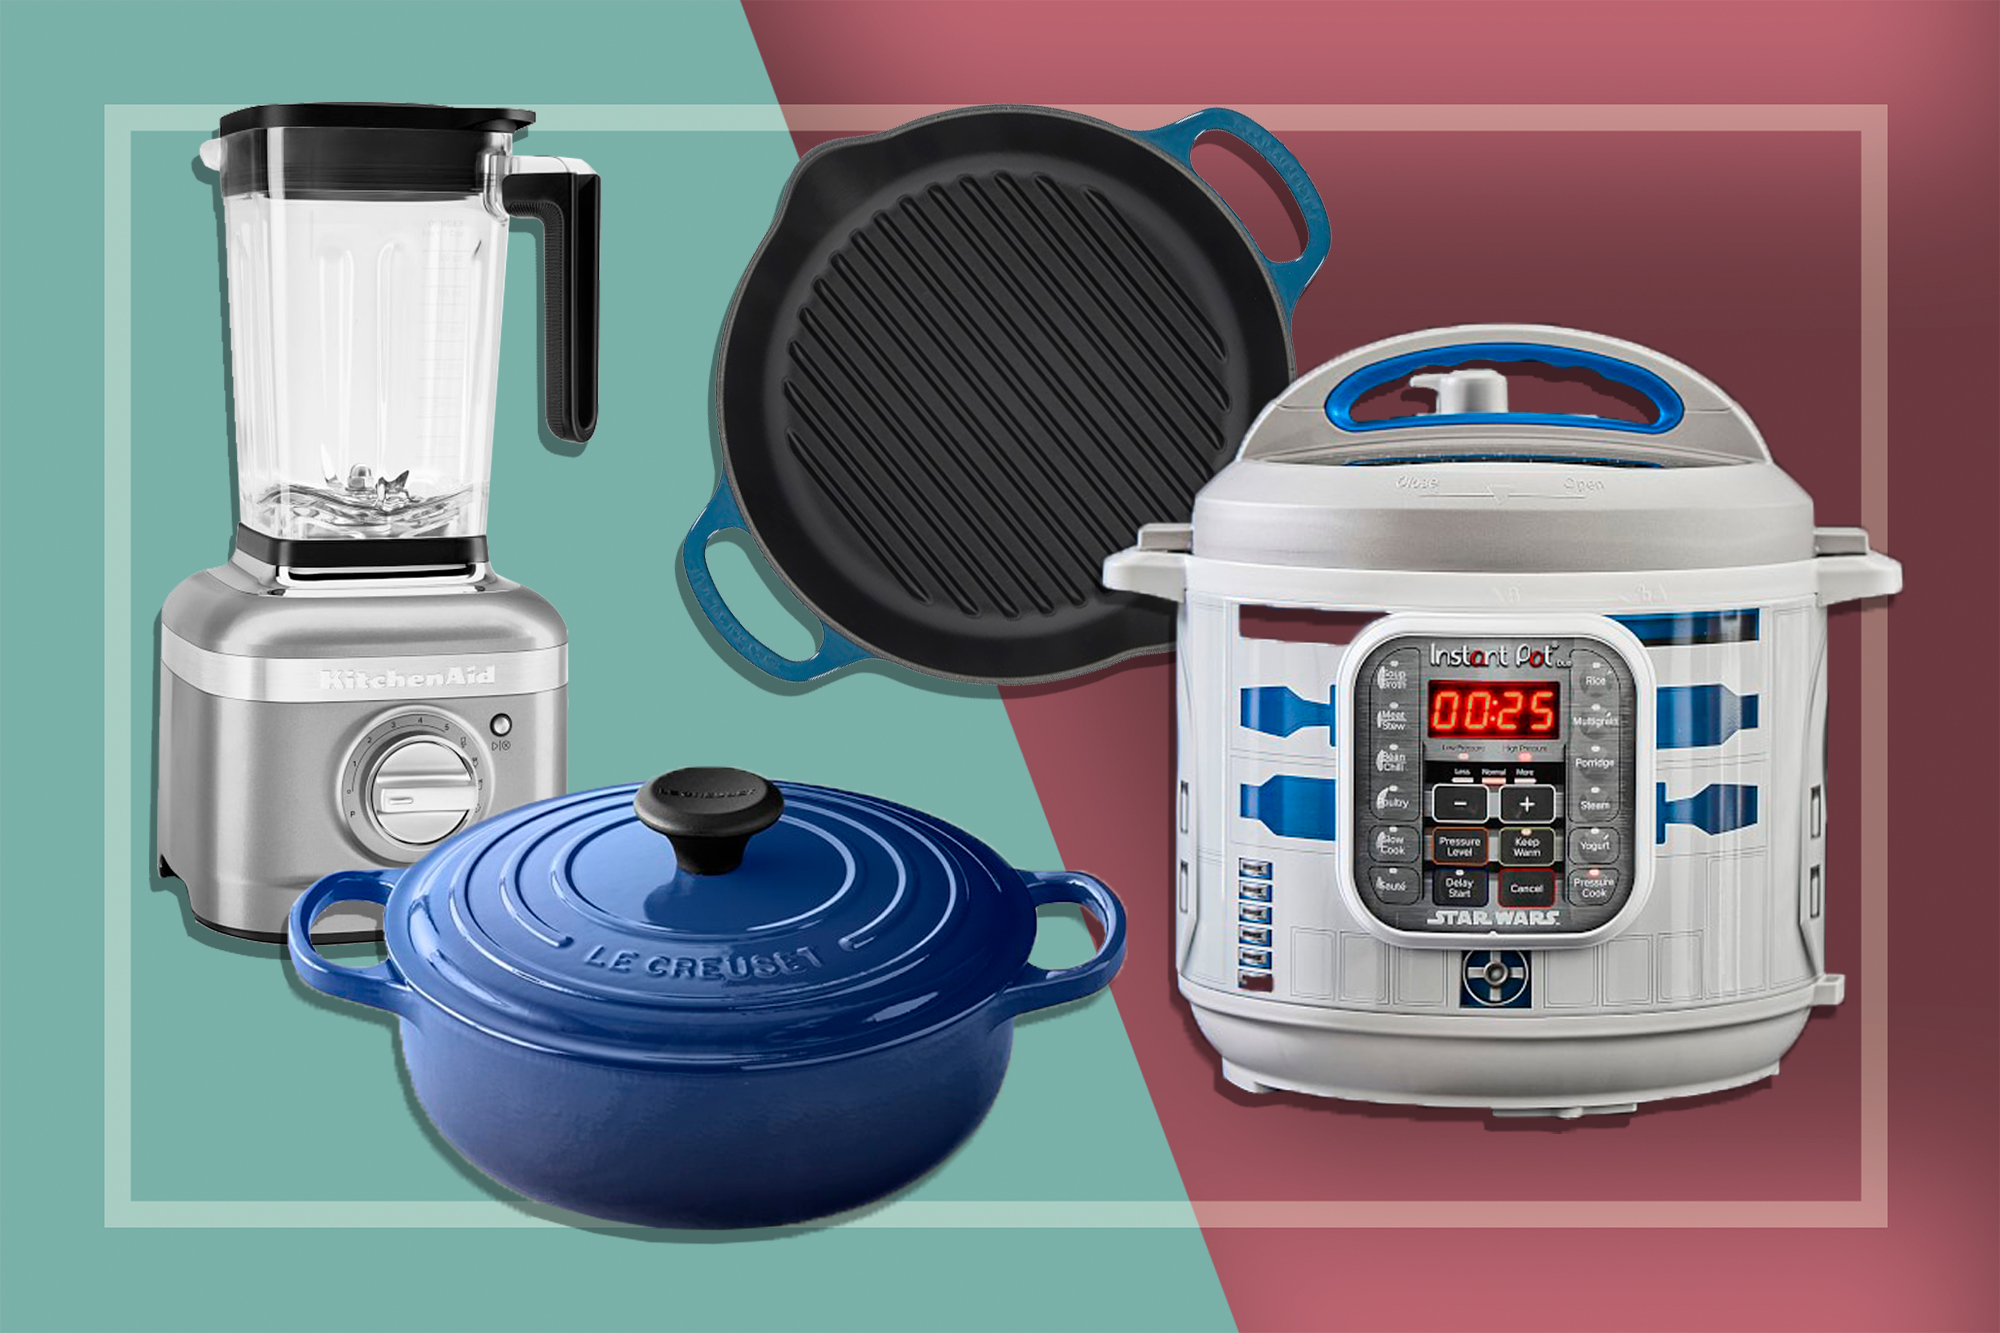 Williams Sonoma Sale on Blender, Dutch Oven, Instant Pot and more